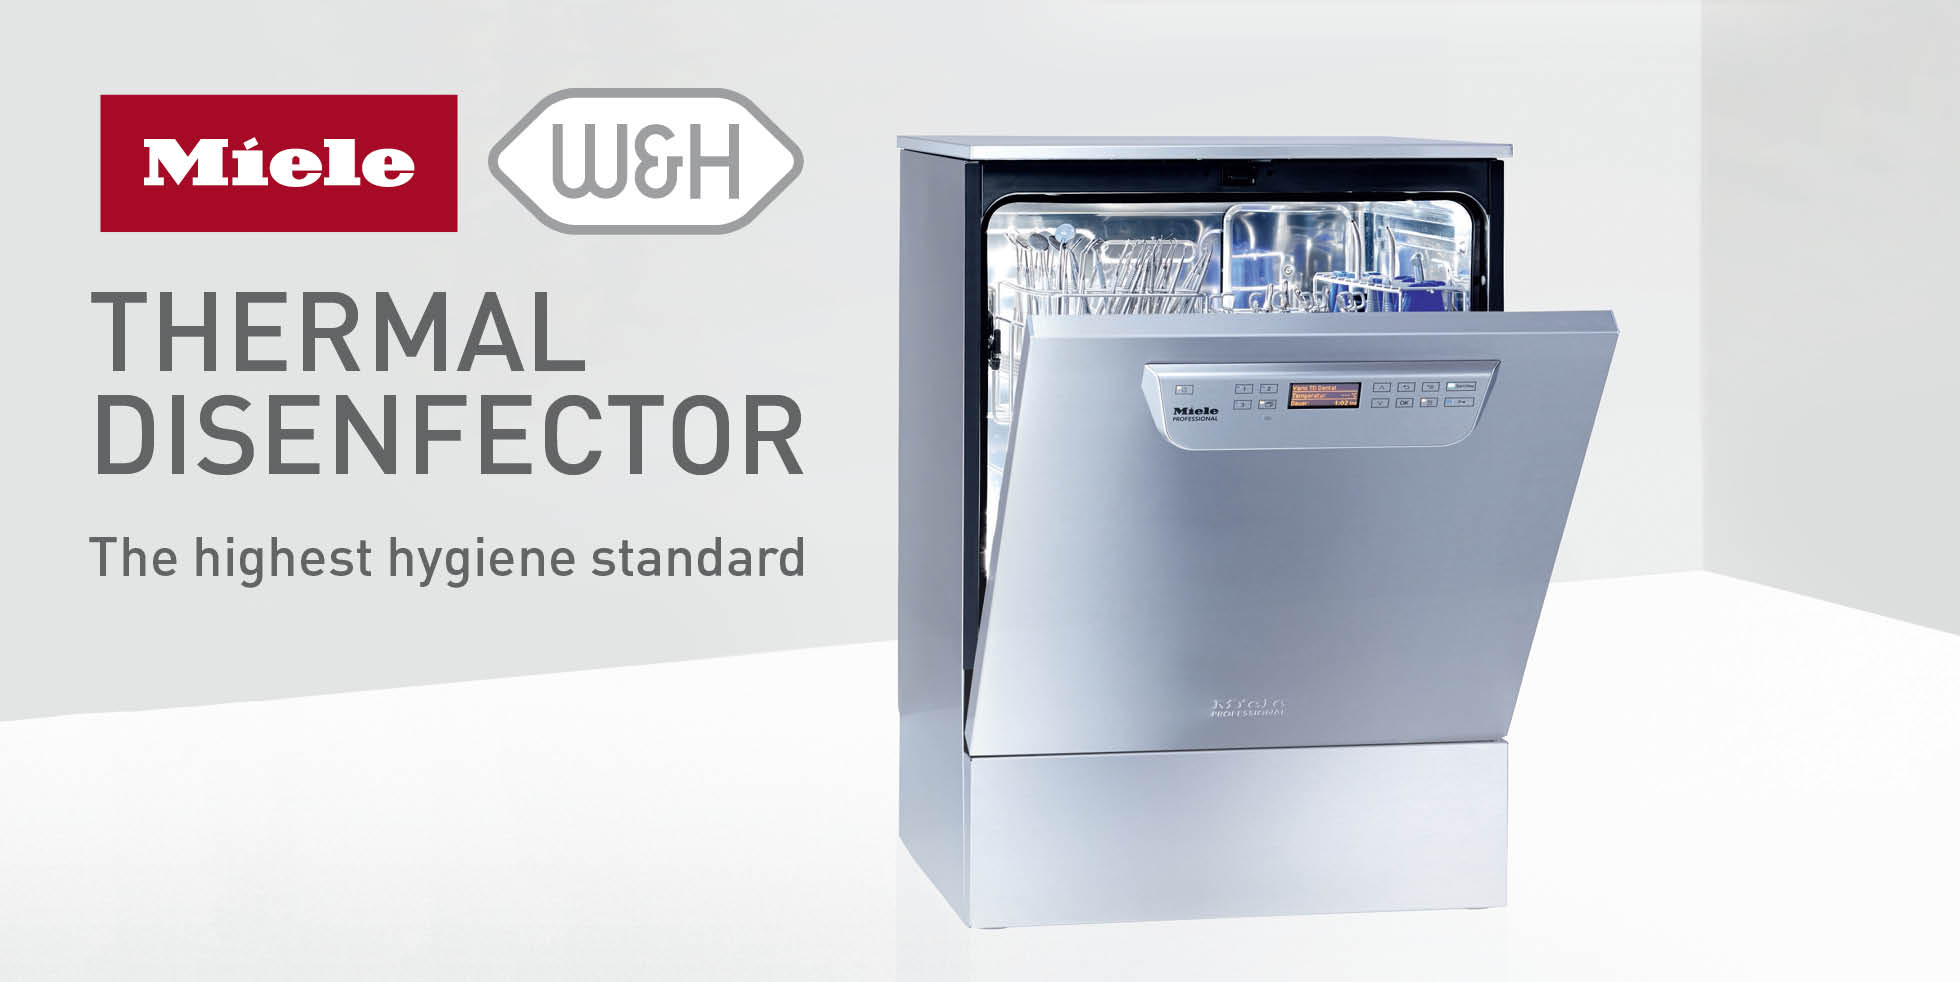 Miele Thermal Disenfector